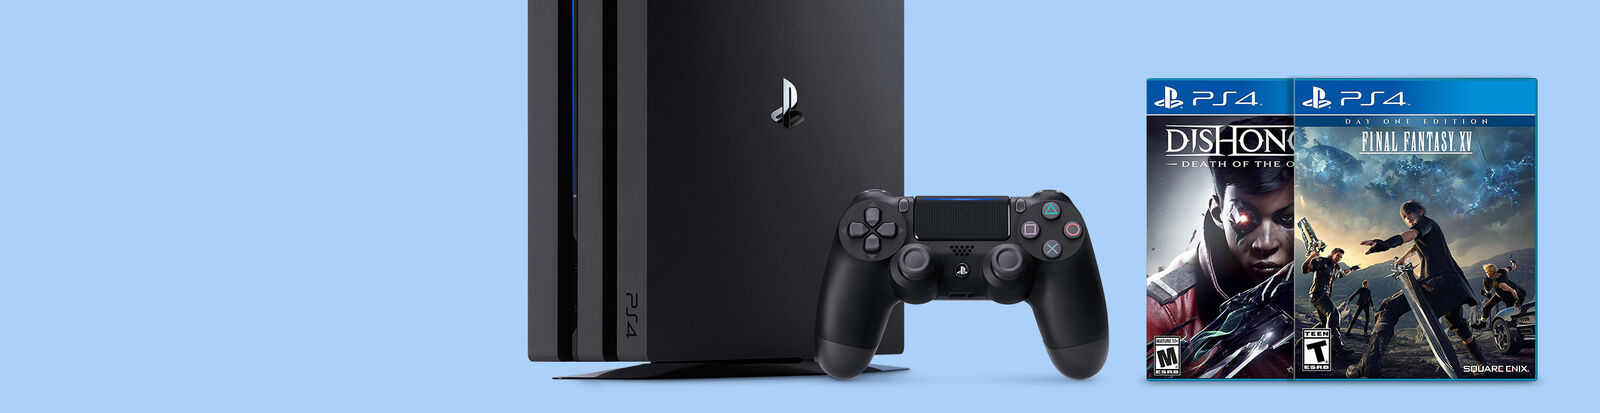 PlayStation 4 Pro Bundle for $349.99. Save now.